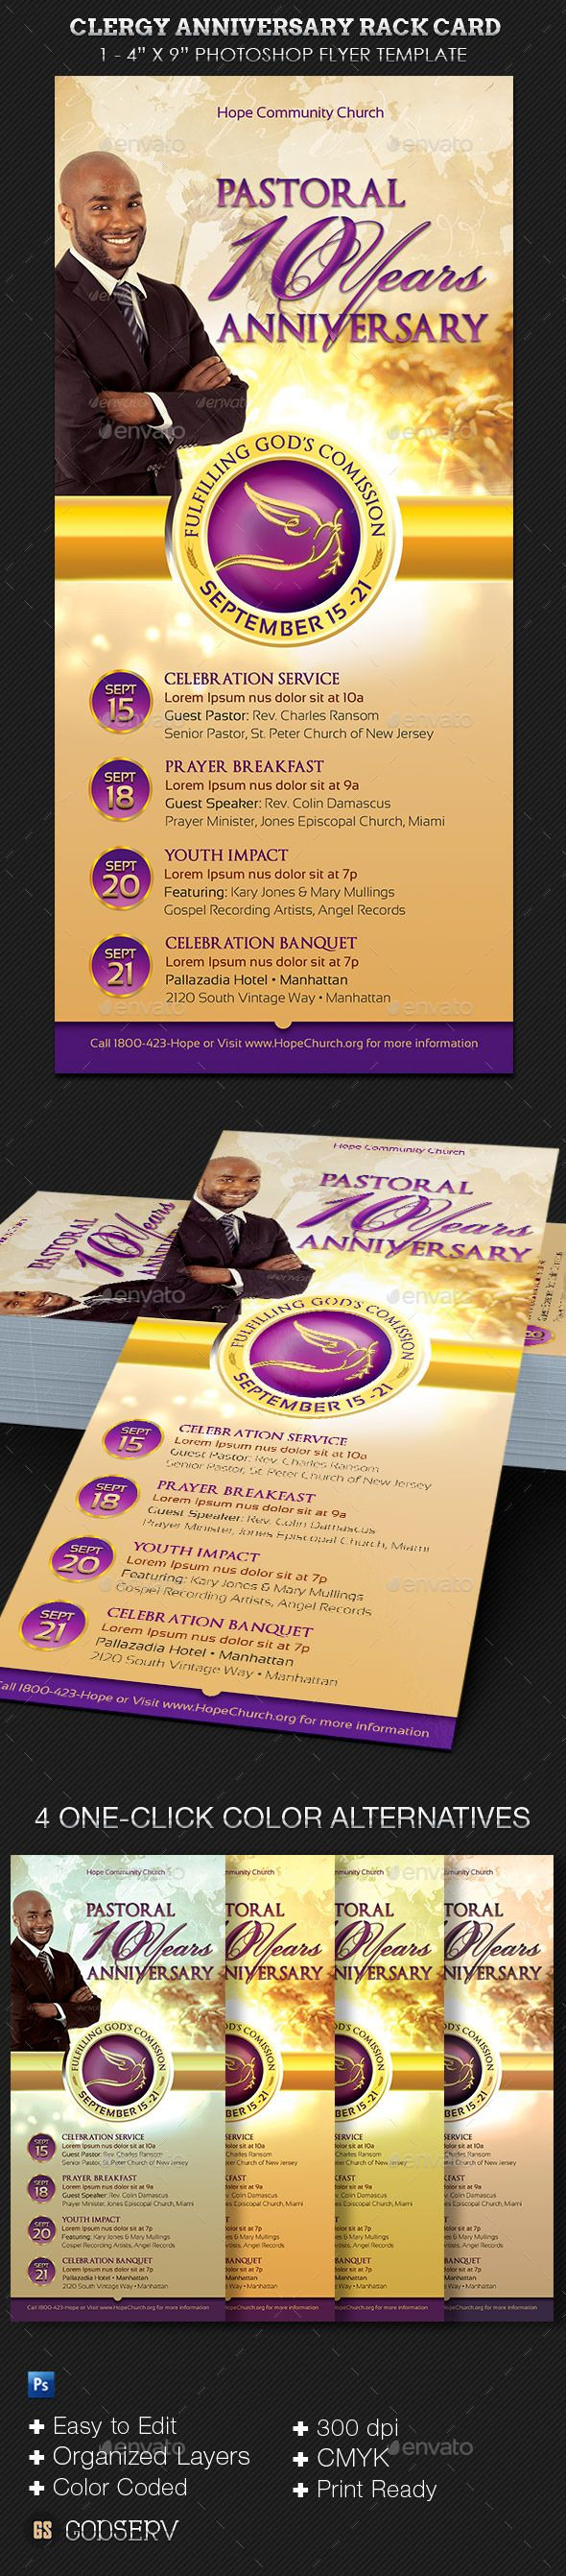 Clergy Anniversary Rack Card Template Yes Photoshop PSD - 4x9 rack card template